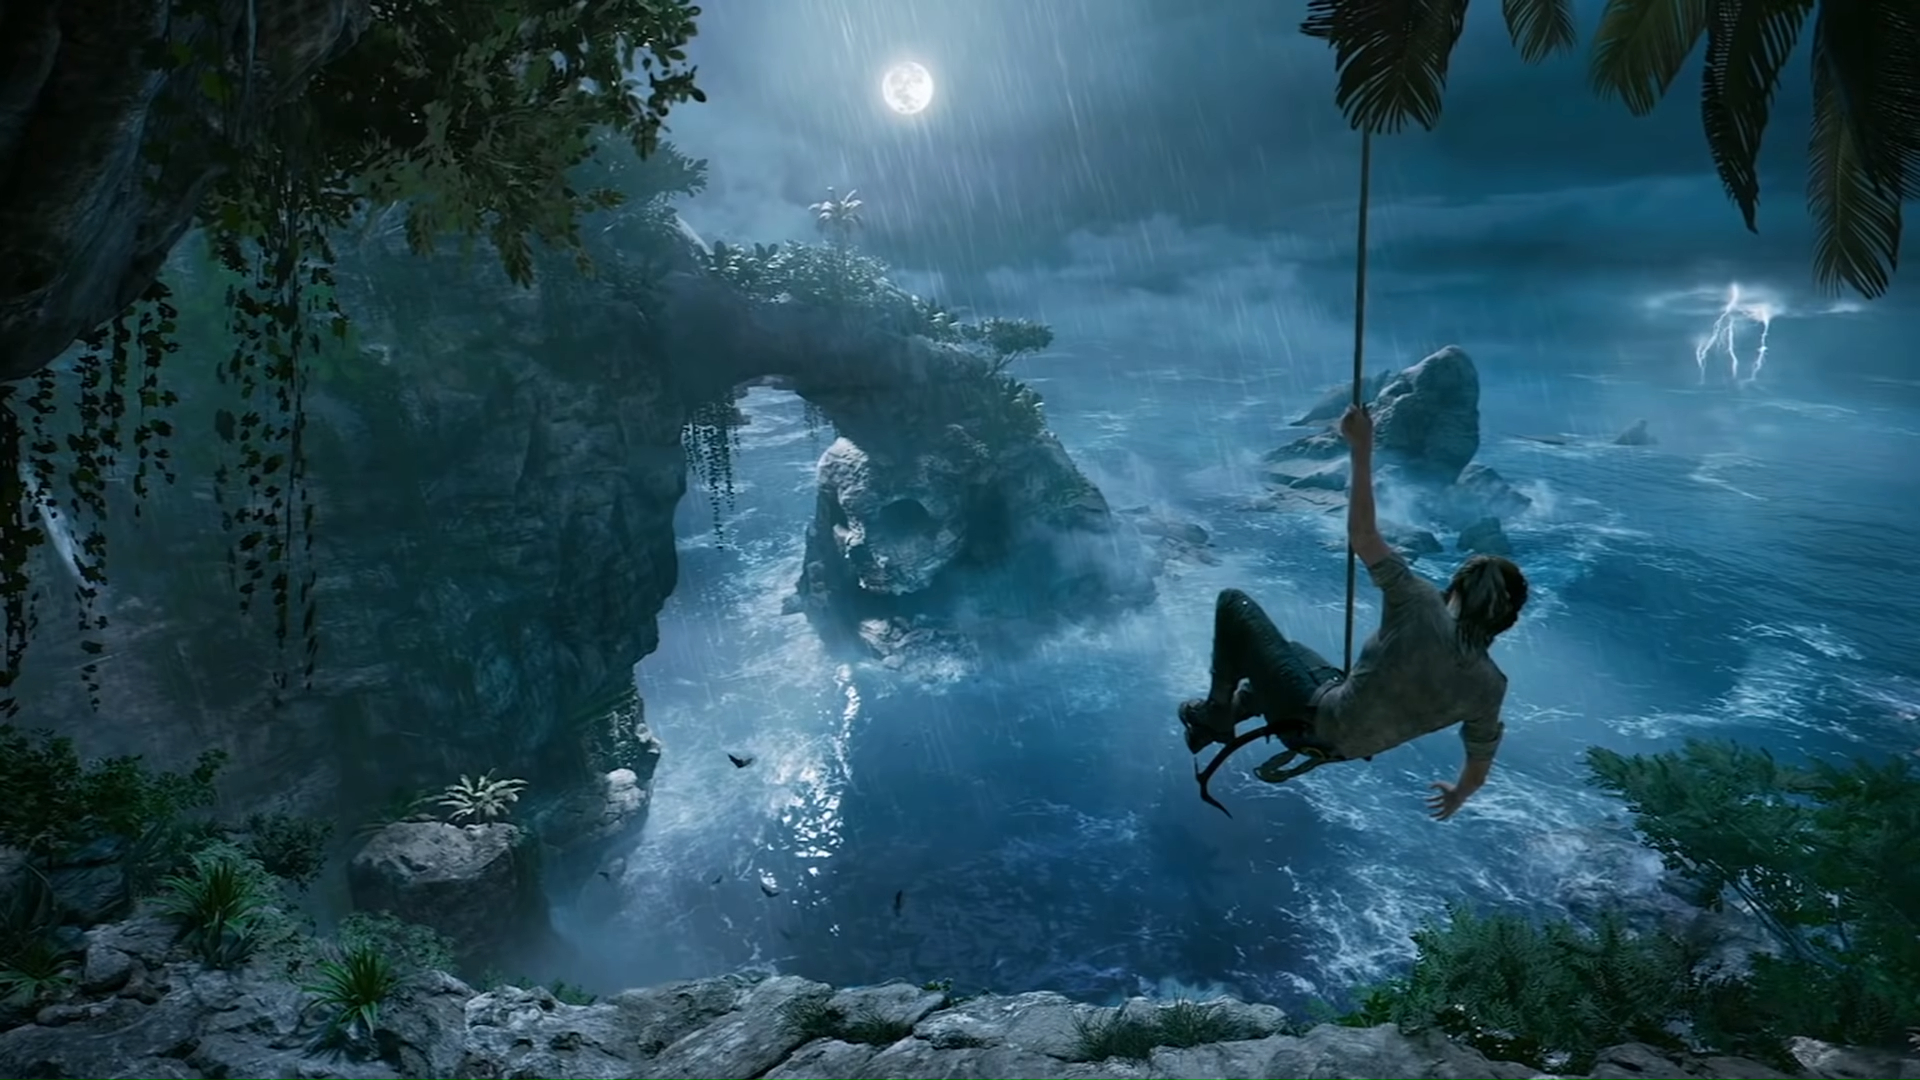 Shadow Of The Tomb Raider Concept Art: Shadow Of The Tomb Raider Guide: The Best Skills And Equipment